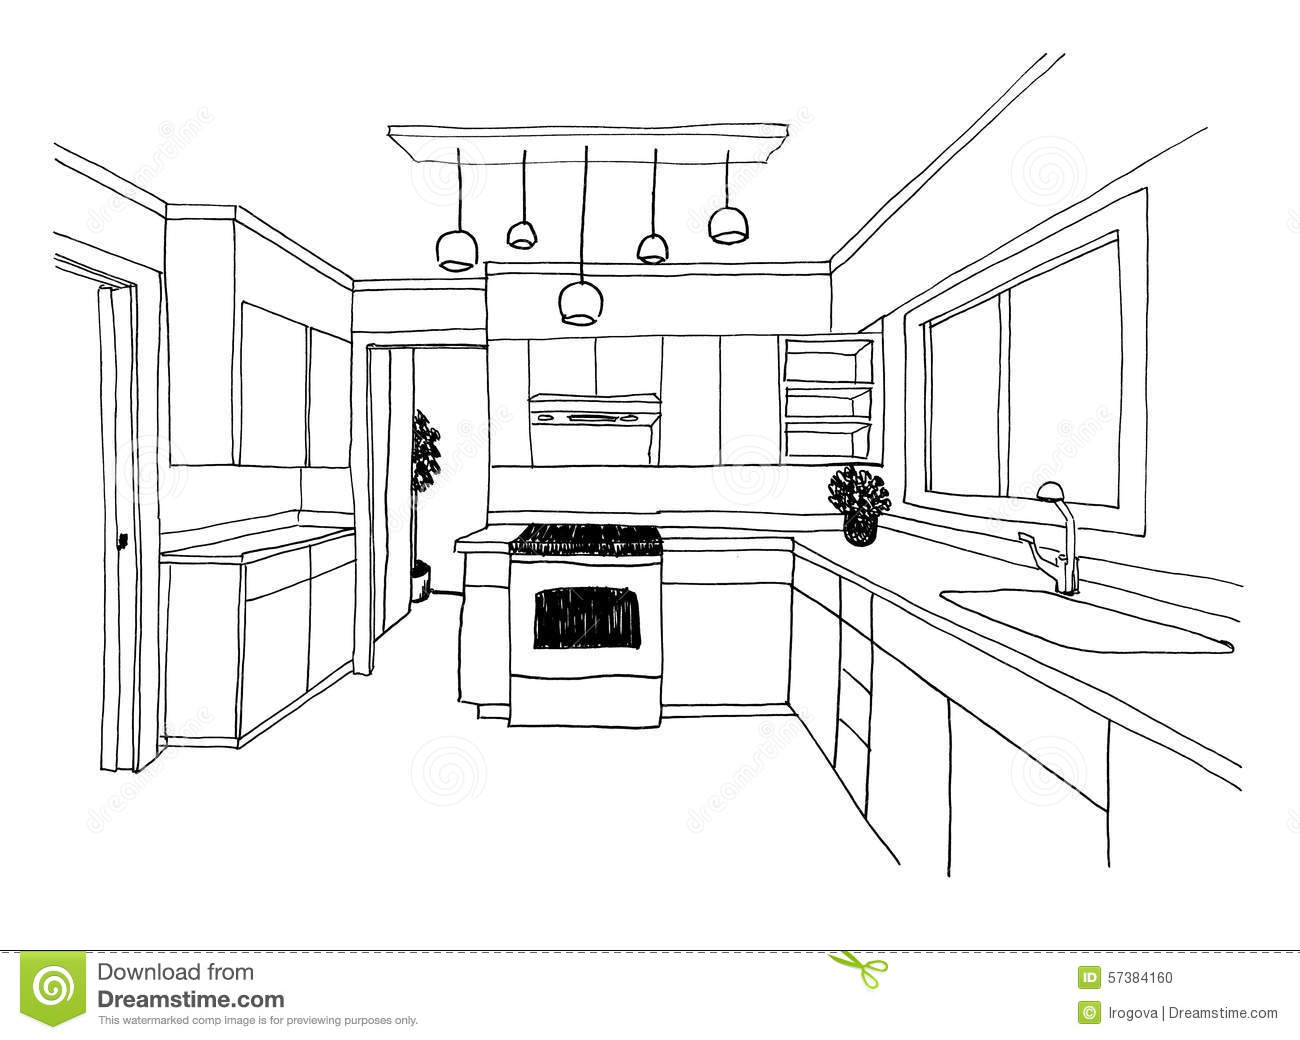 kitchen island seats 6 cabinets doors for sale graphical sketch, the stock illustration - image ...